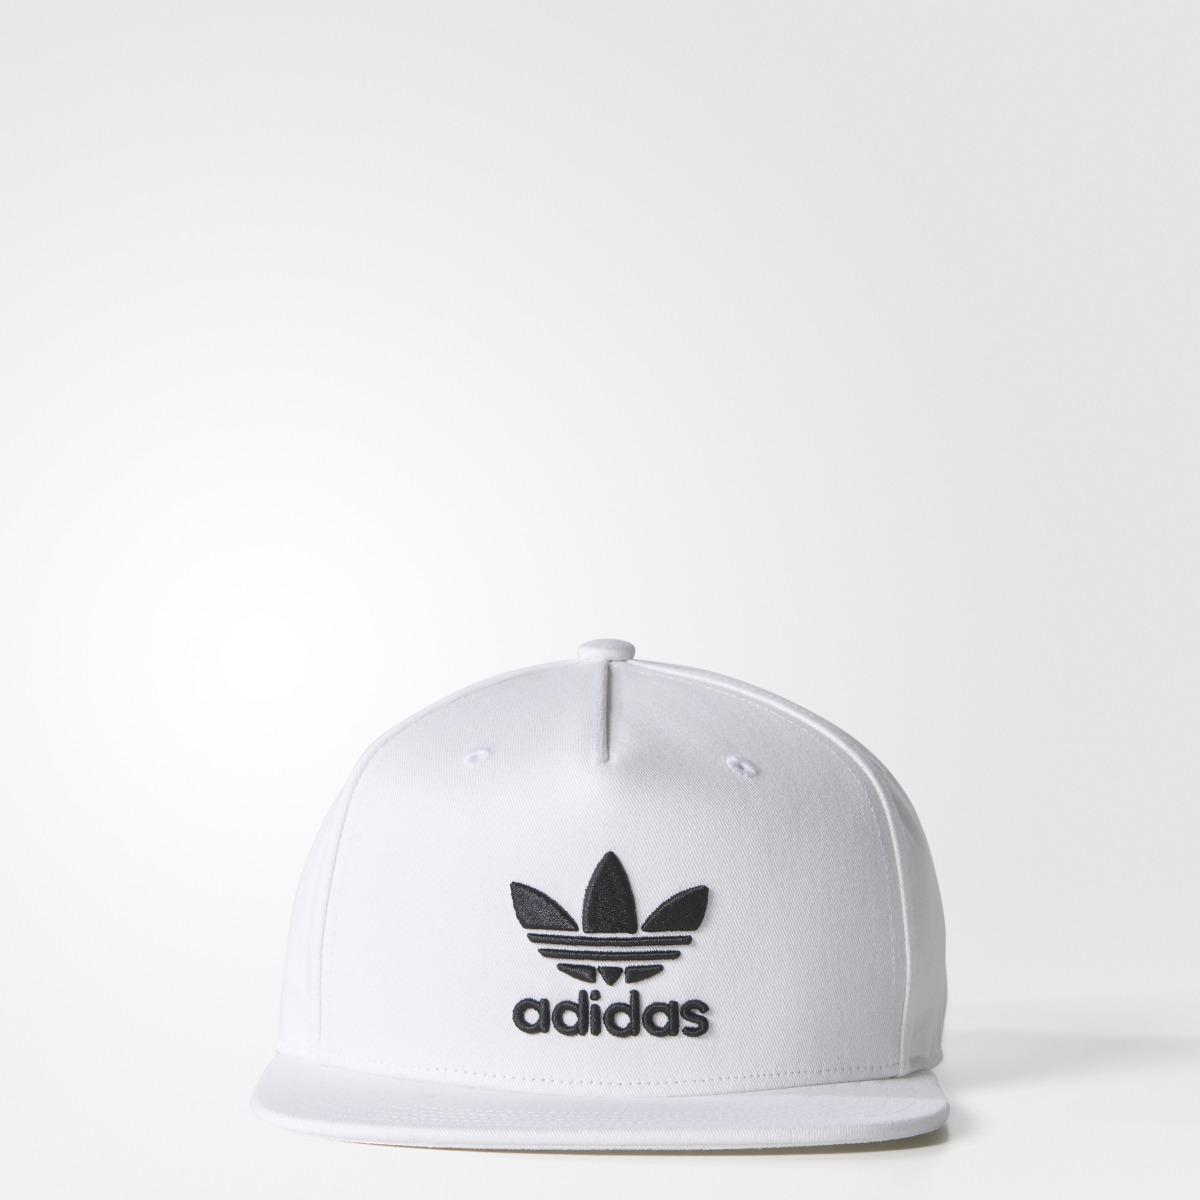 44b2775d Lyst - adidas Originals Trefoil Snb Unisex Baseball Cap in White for Men